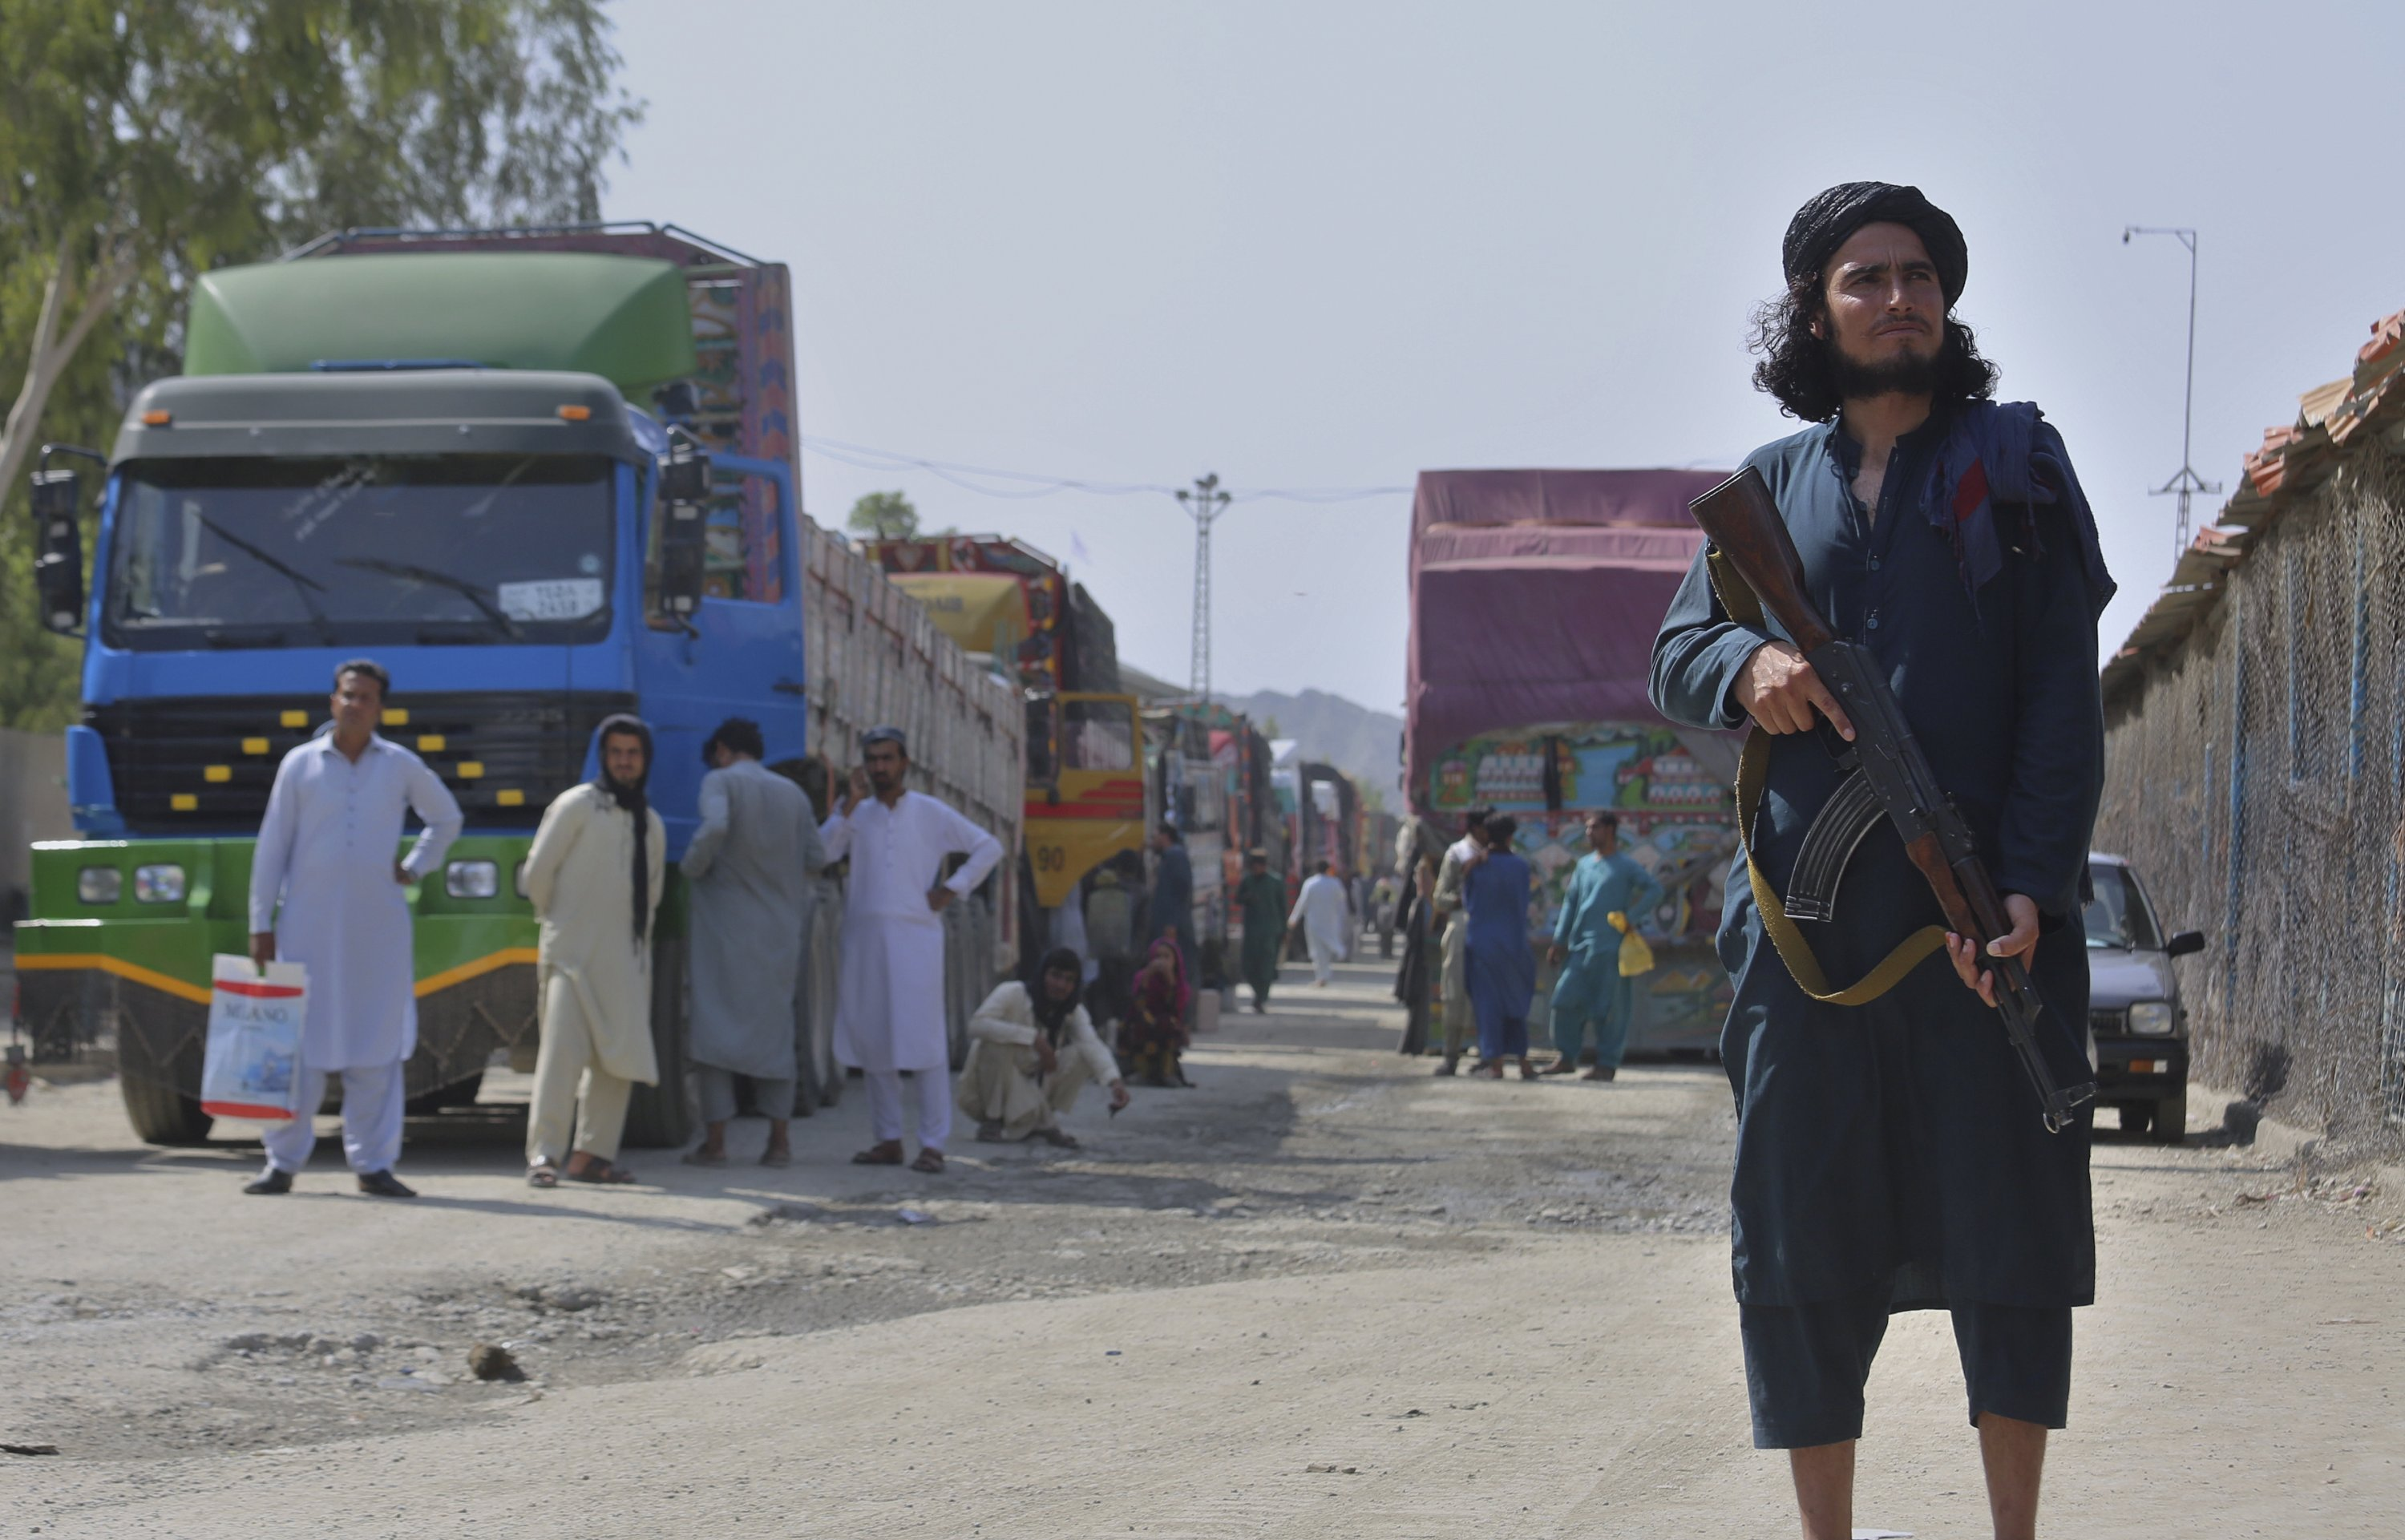 A Taliban fighter stands guard on the Afghan side while people wait to cross at a border crossing point between Pakistan and Afghanistan, in Torkham, in Khyber district, Pakistan, Aug. 21, 2021. (AP Photo)